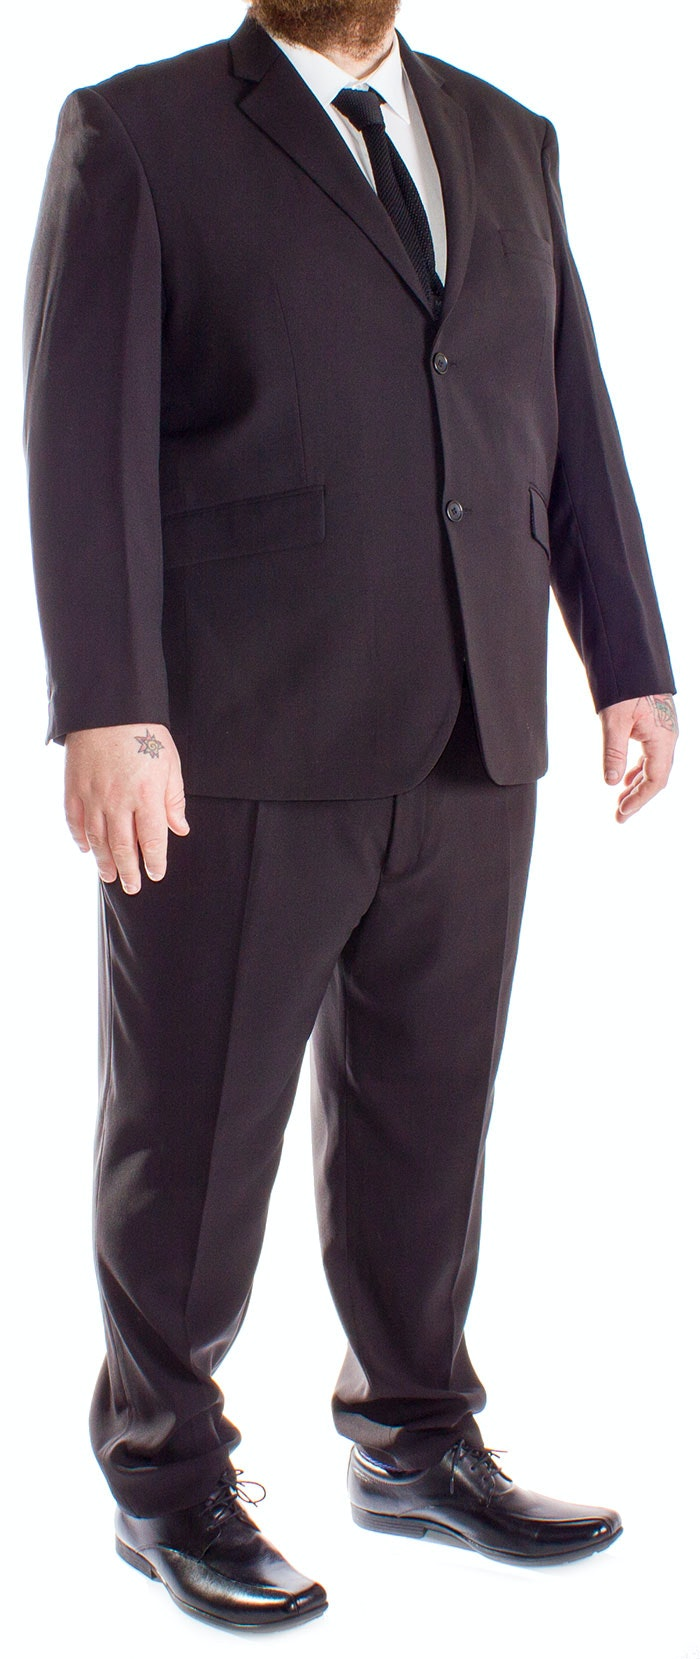 Cruz Sharp Suit Black